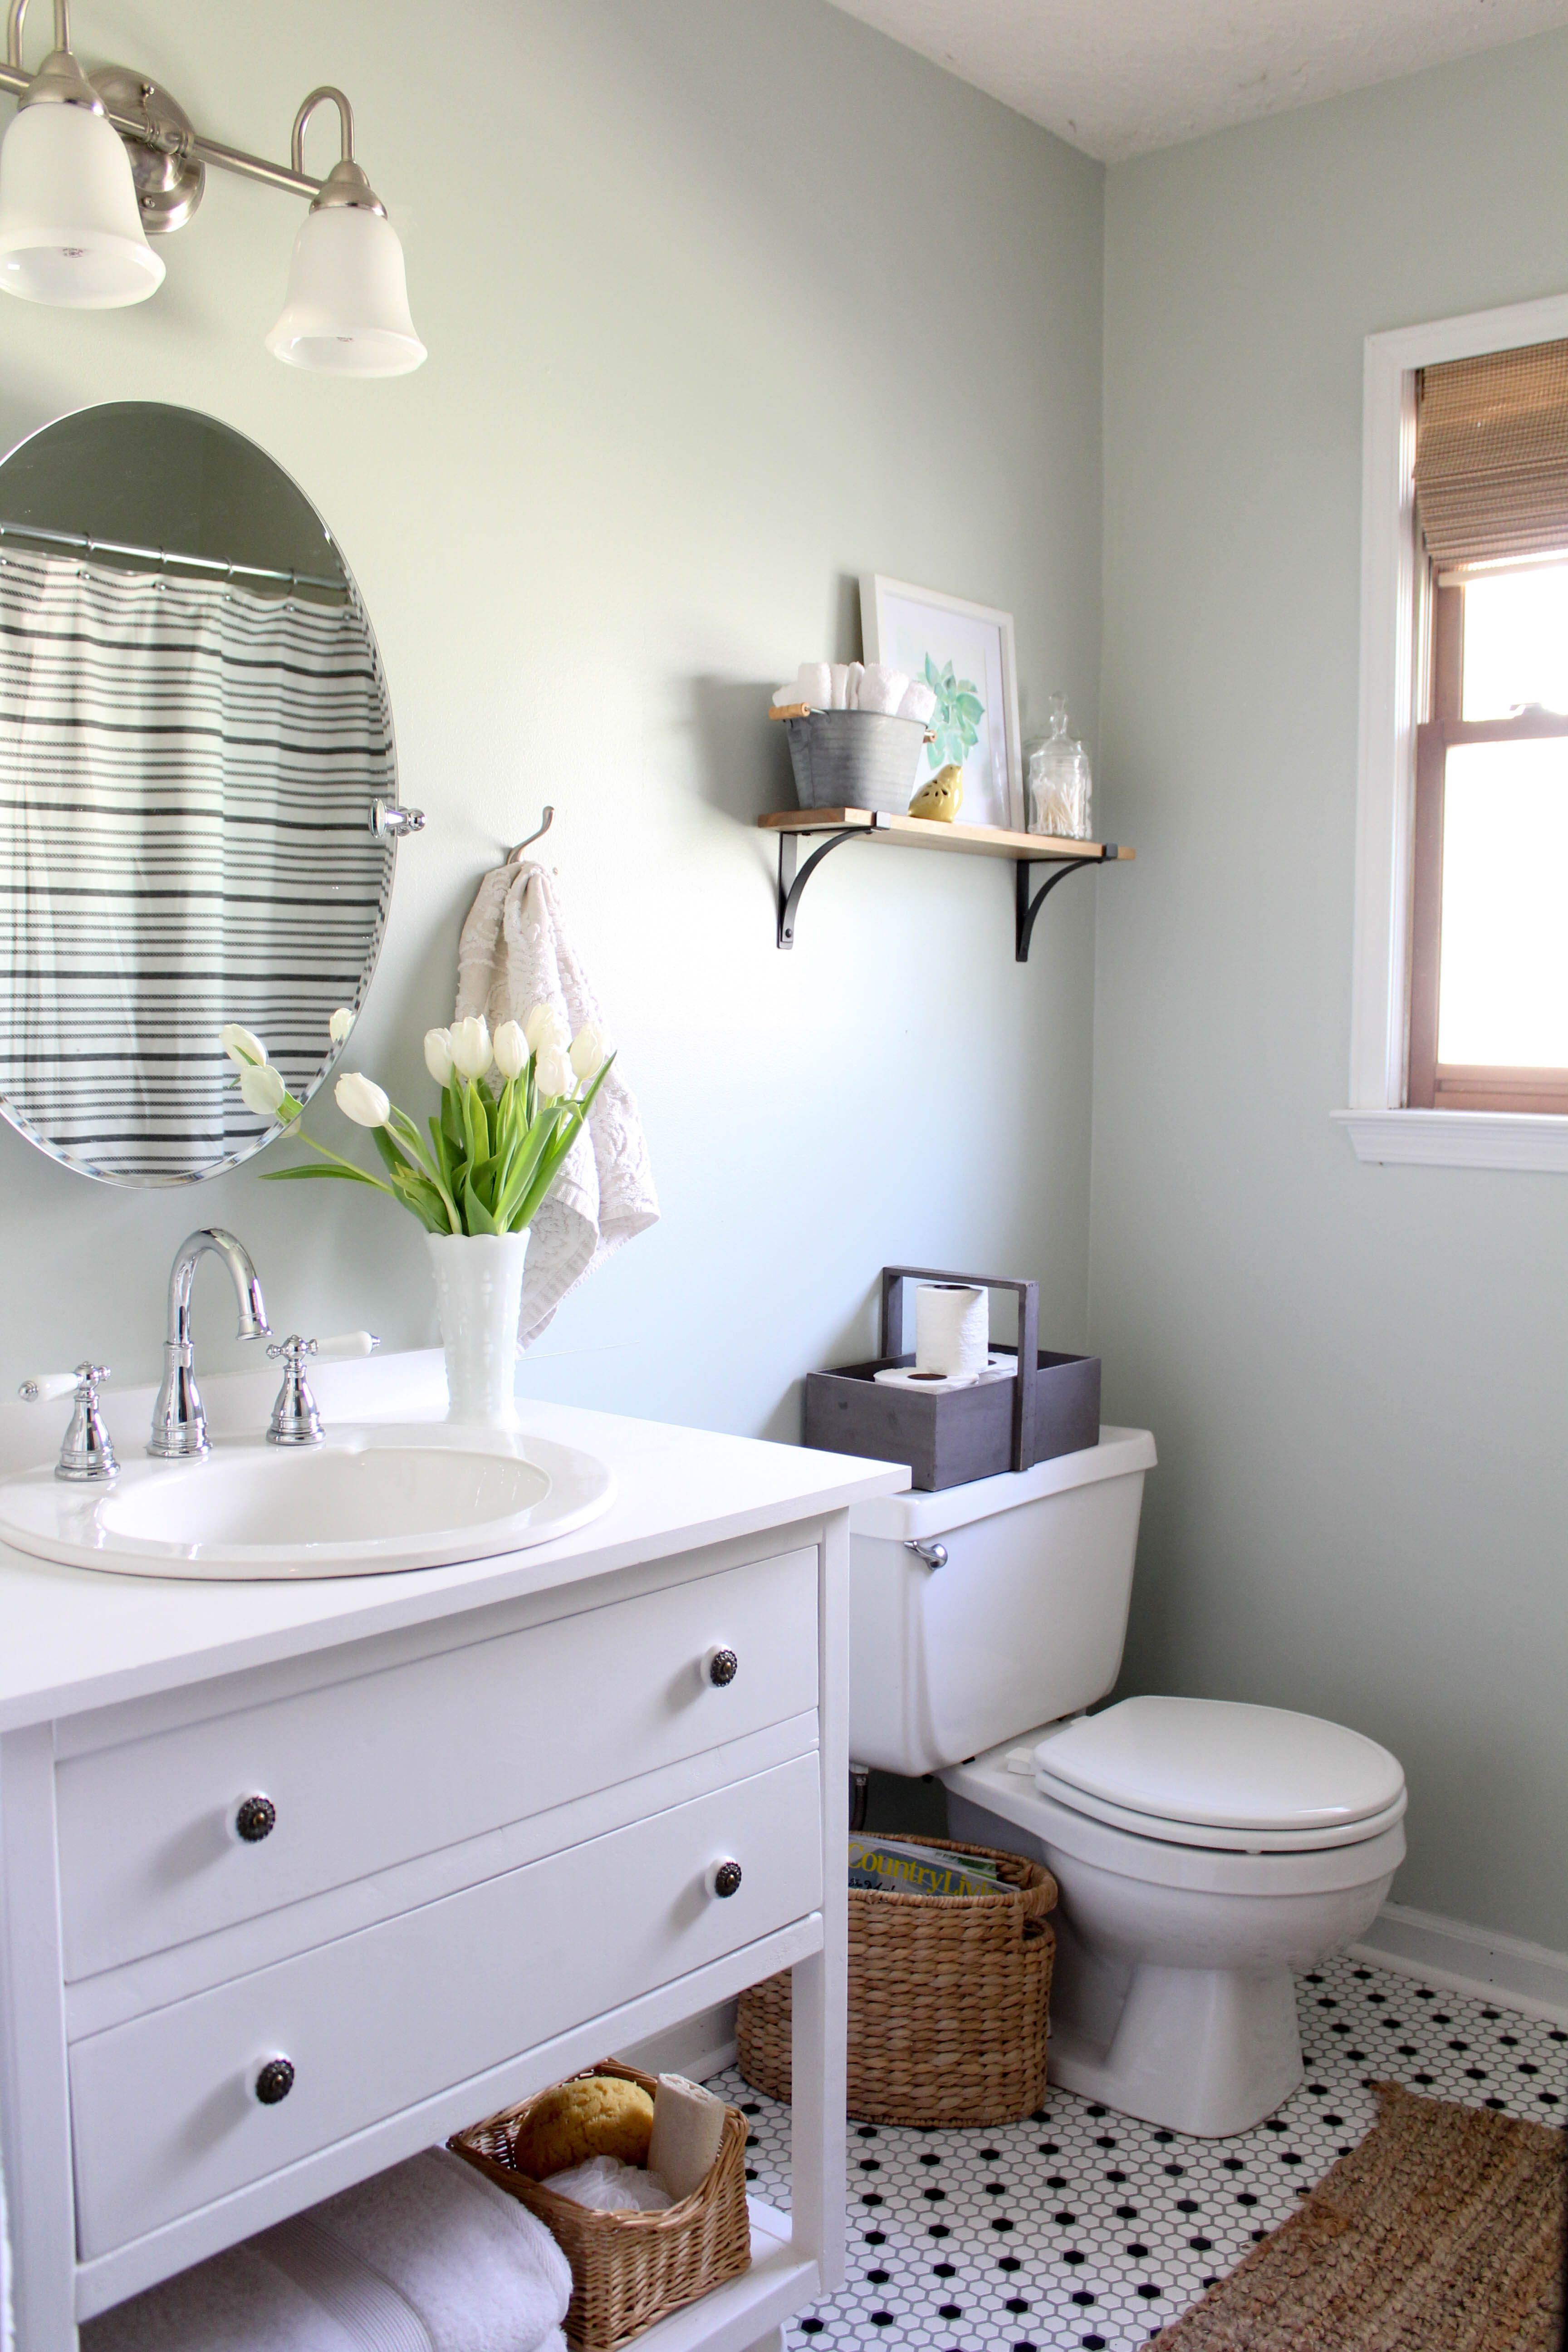 Our Budget Friendly Guest Bath Update With Images Budget